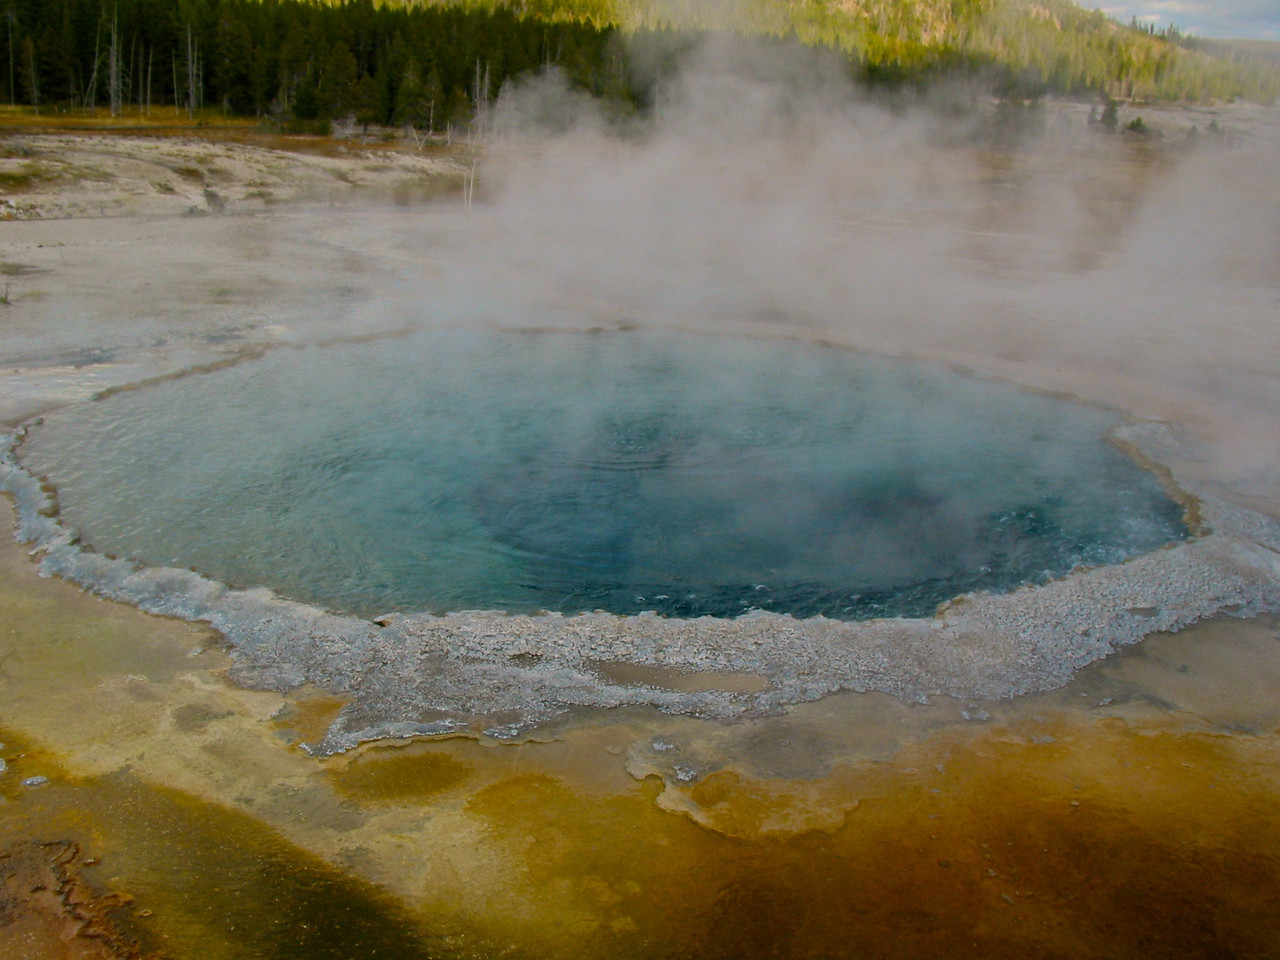 There are 300 geysers in Yellowstone and a total of at least 10,000 geothermal features altogether. Half the geothermal features and two-thirds of the world's geysers are concentrated in Yellowstone.